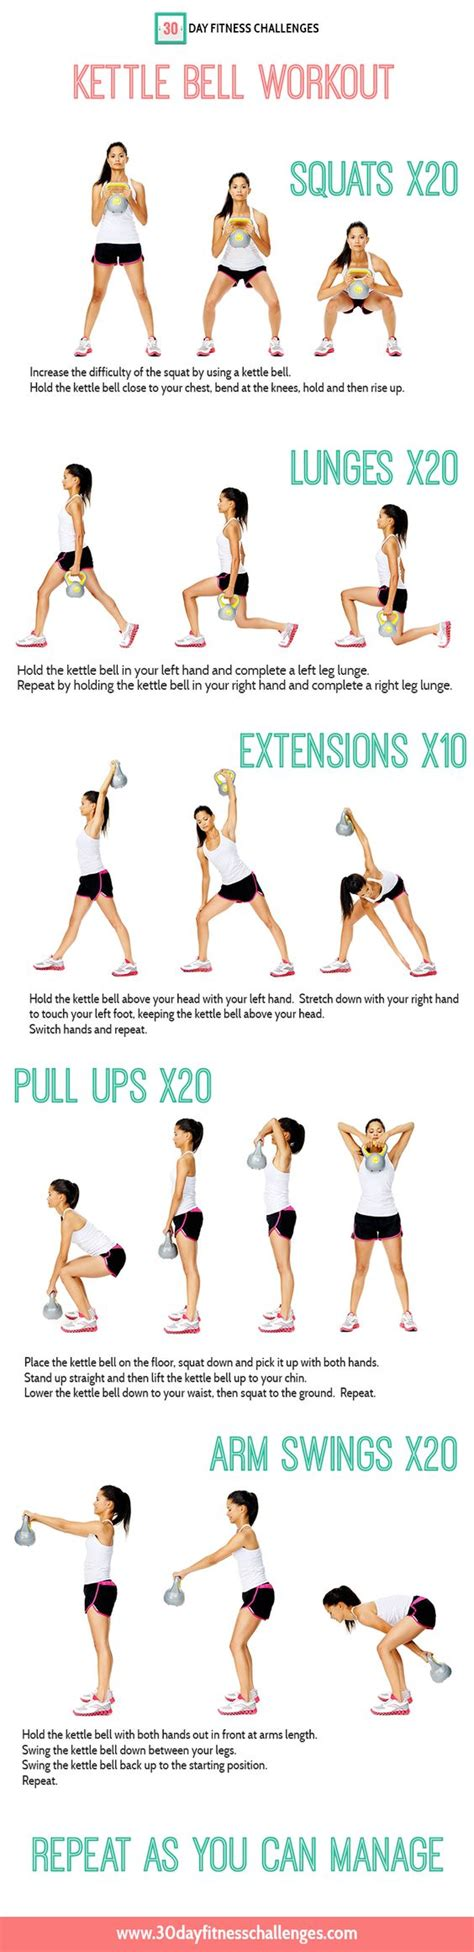 kettlebell workout kettle bell exercises workouts chart fitness challenge abs cardio exercise training challenges arms body fat motivation printable weight